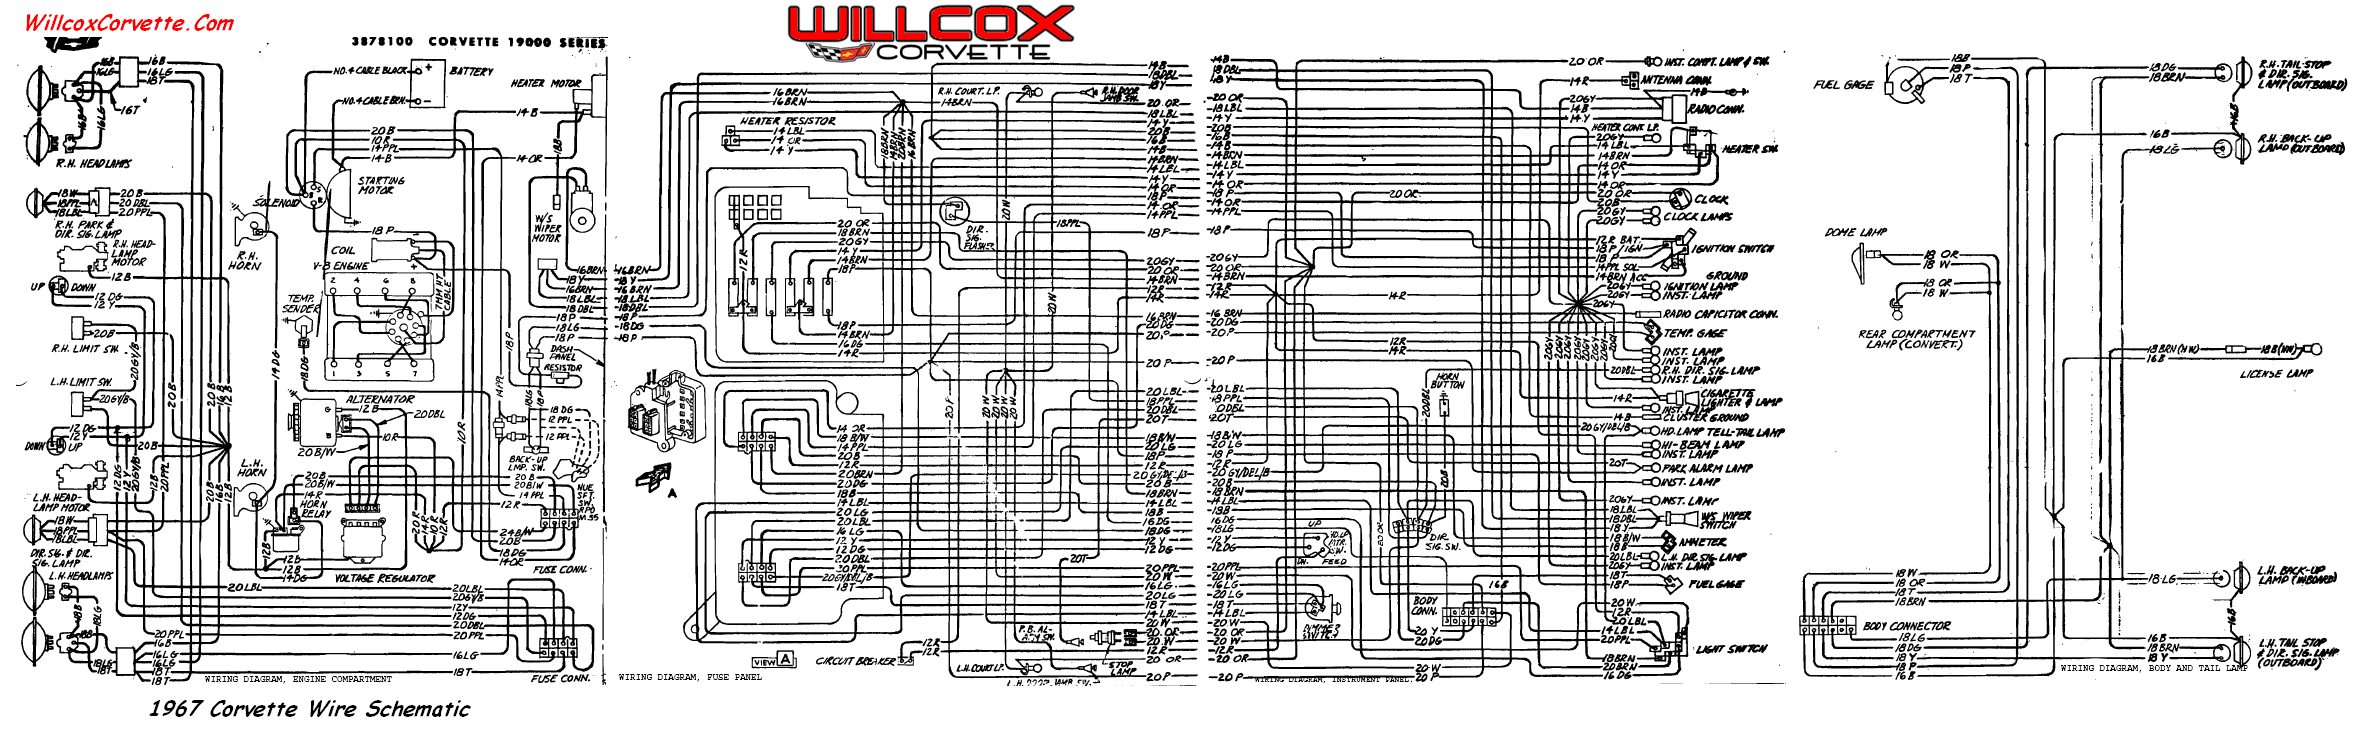 67 wire schematic for tracing wires 1967 corvette wiring diagram (tracer schematic) willcox corvette 1984 corvette wiring diagram schematic at crackthecode.co